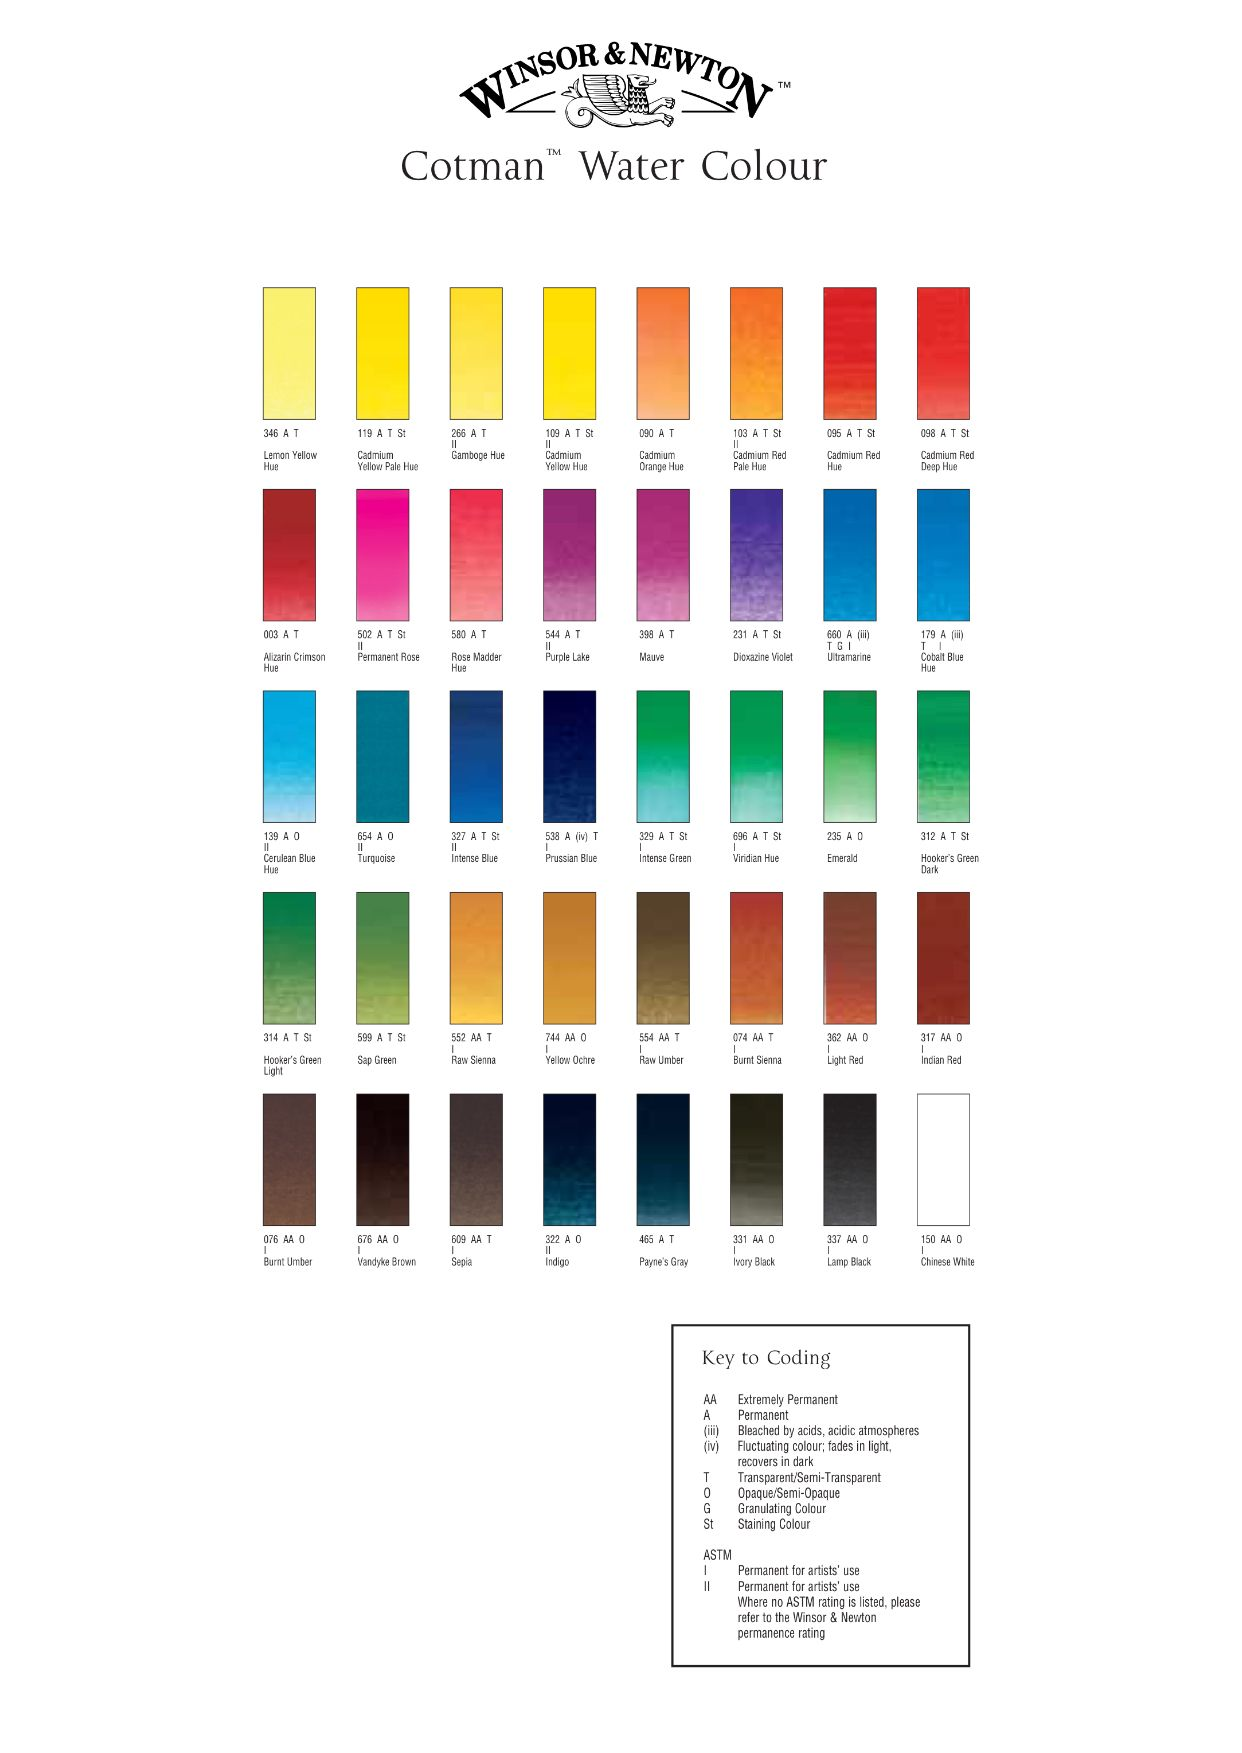 Winsor And Newton Watercolor Palette : winsor, newton, watercolor, palette, Winsor, Newton, Cotman, Watercolor, Chart, Paint, Color, Chart,, Watercolor,